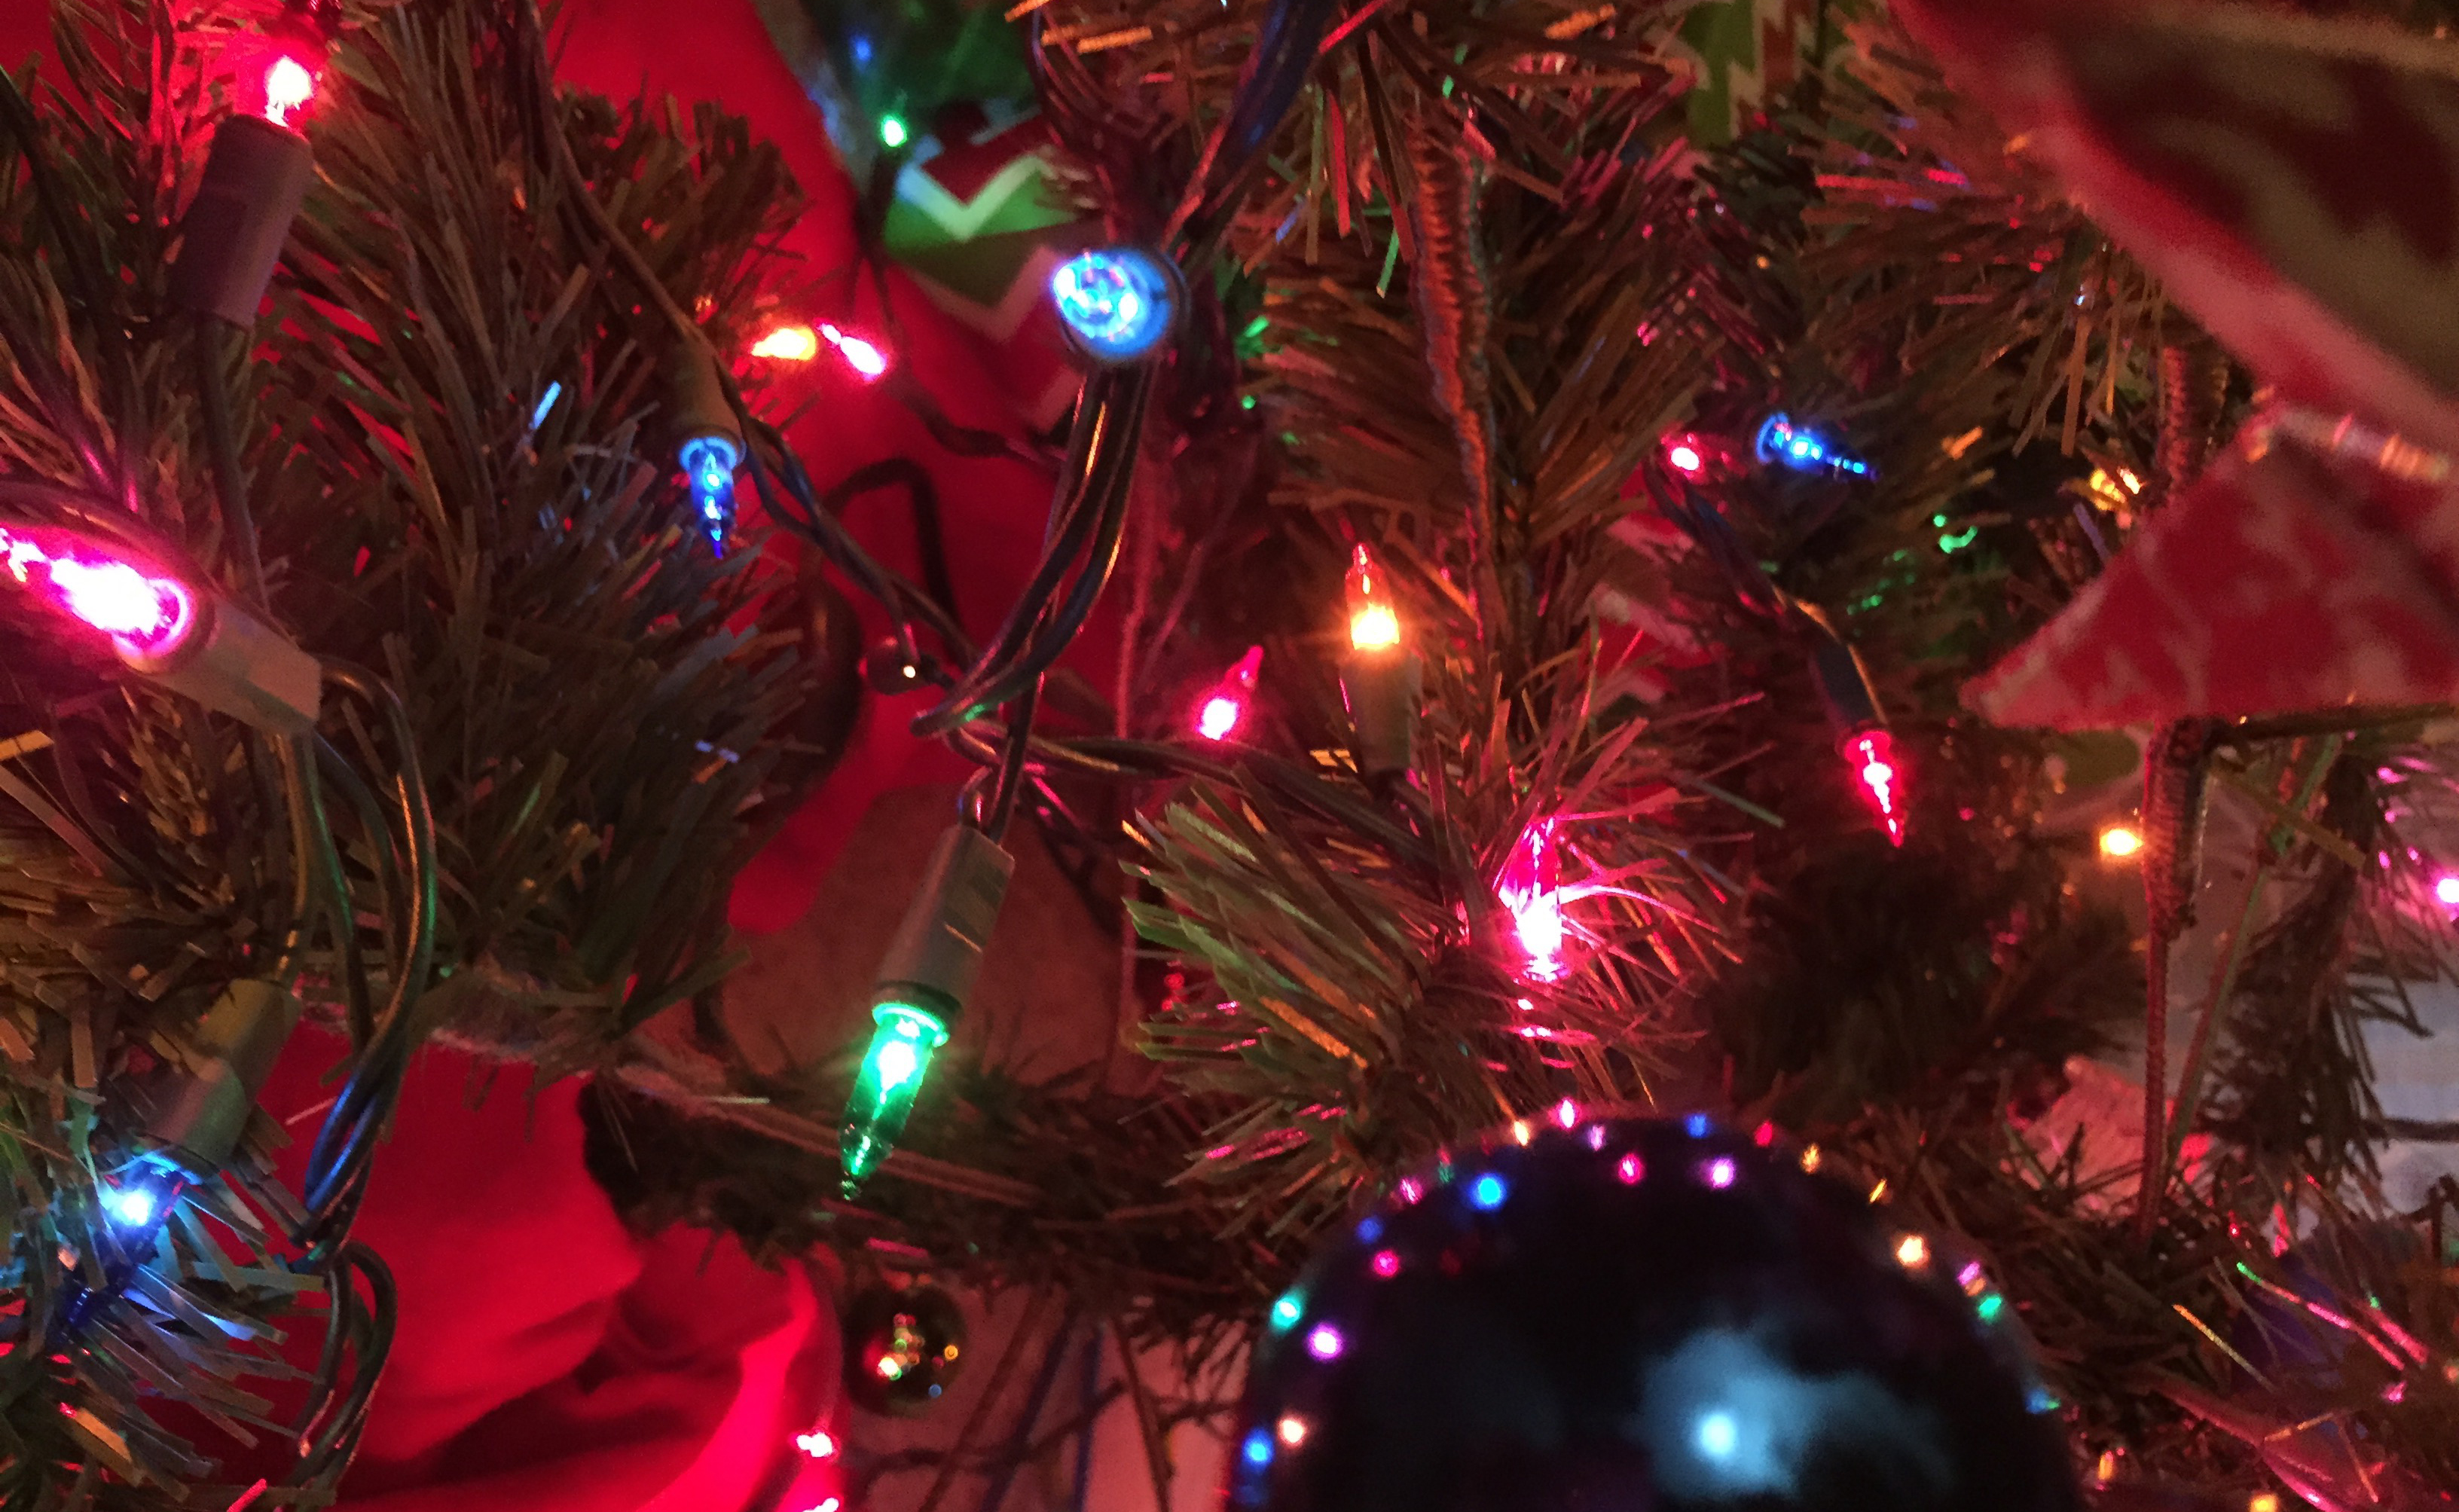 Will Christmas Lights Break or Affect My WiFi? Here's the Truth